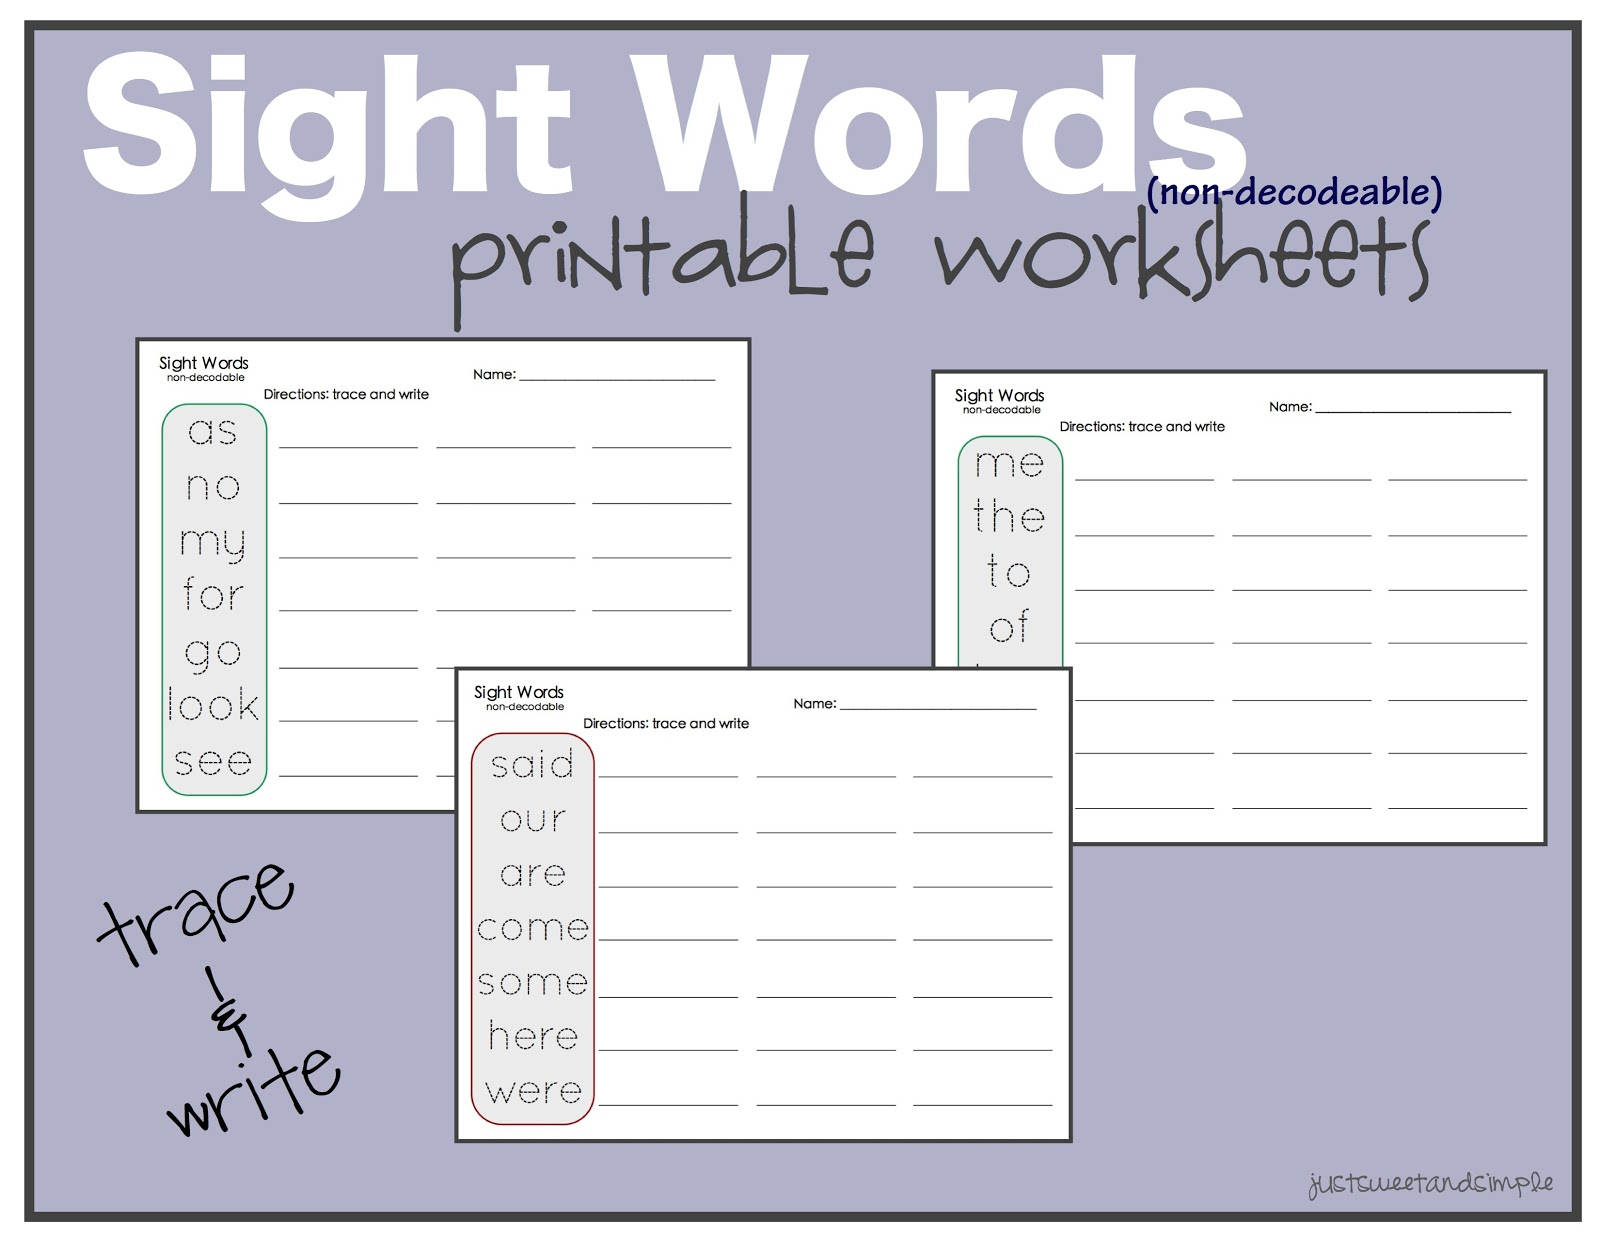 worksheet Site Word Worksheets just sweet and simple preschool practice sight word worksheets